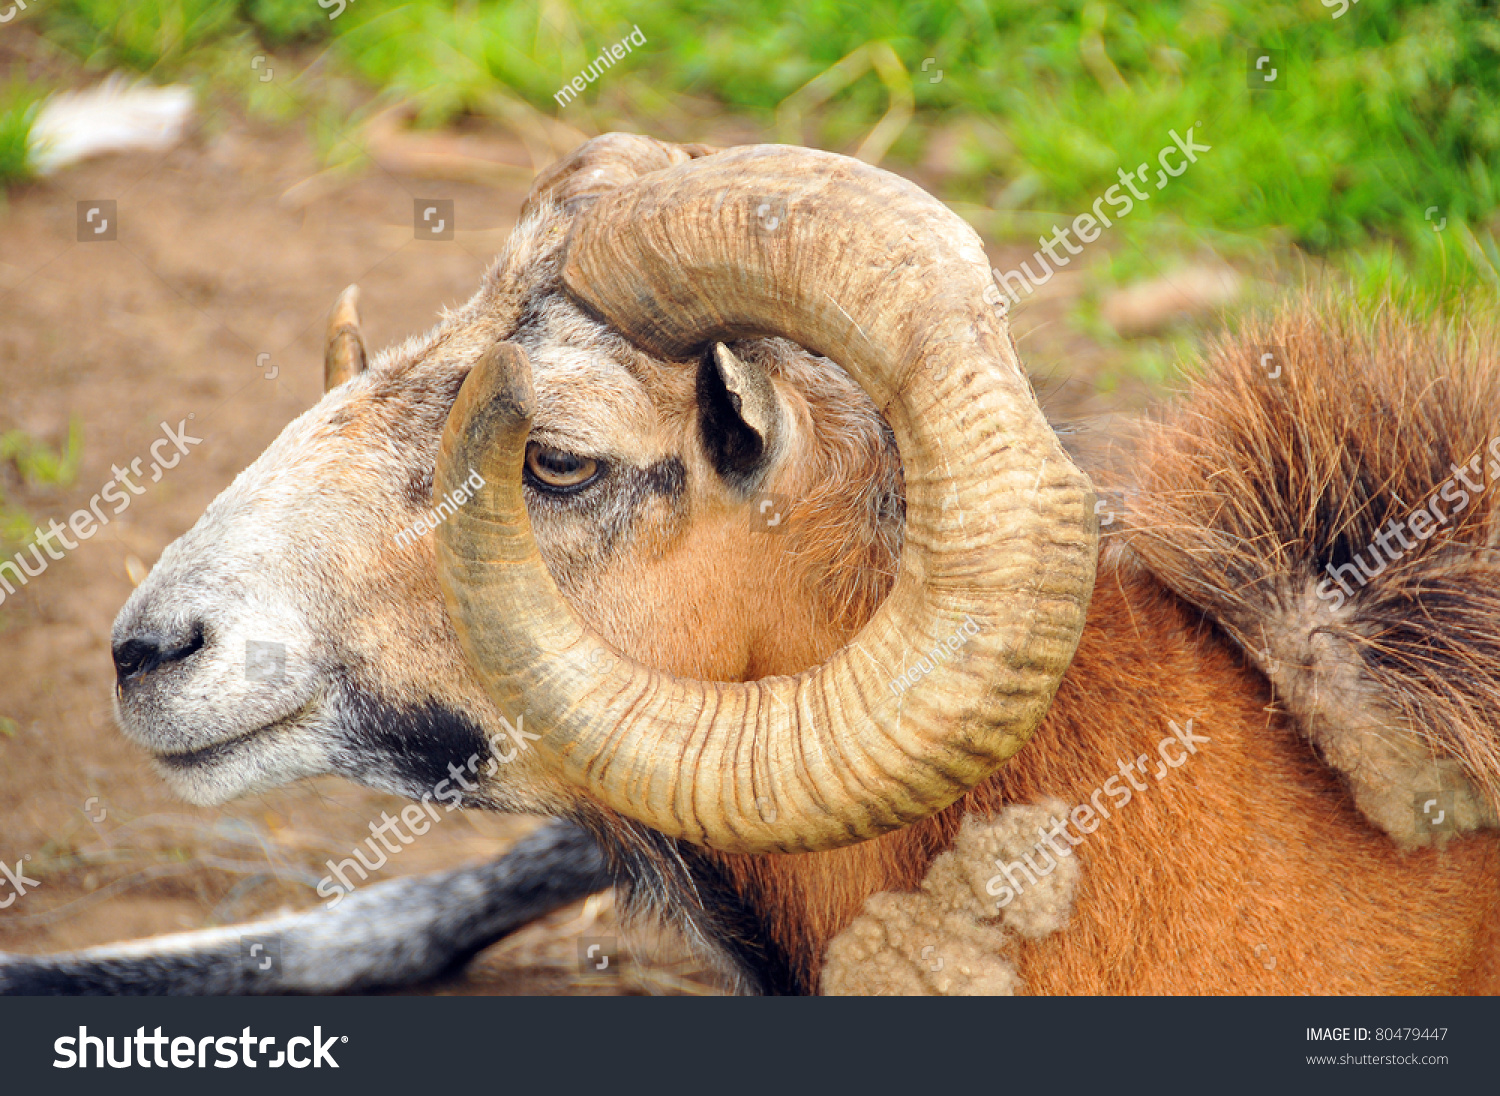 Ram Meanings Symbolic Thoughts About Ram Stock Photo Edit Now